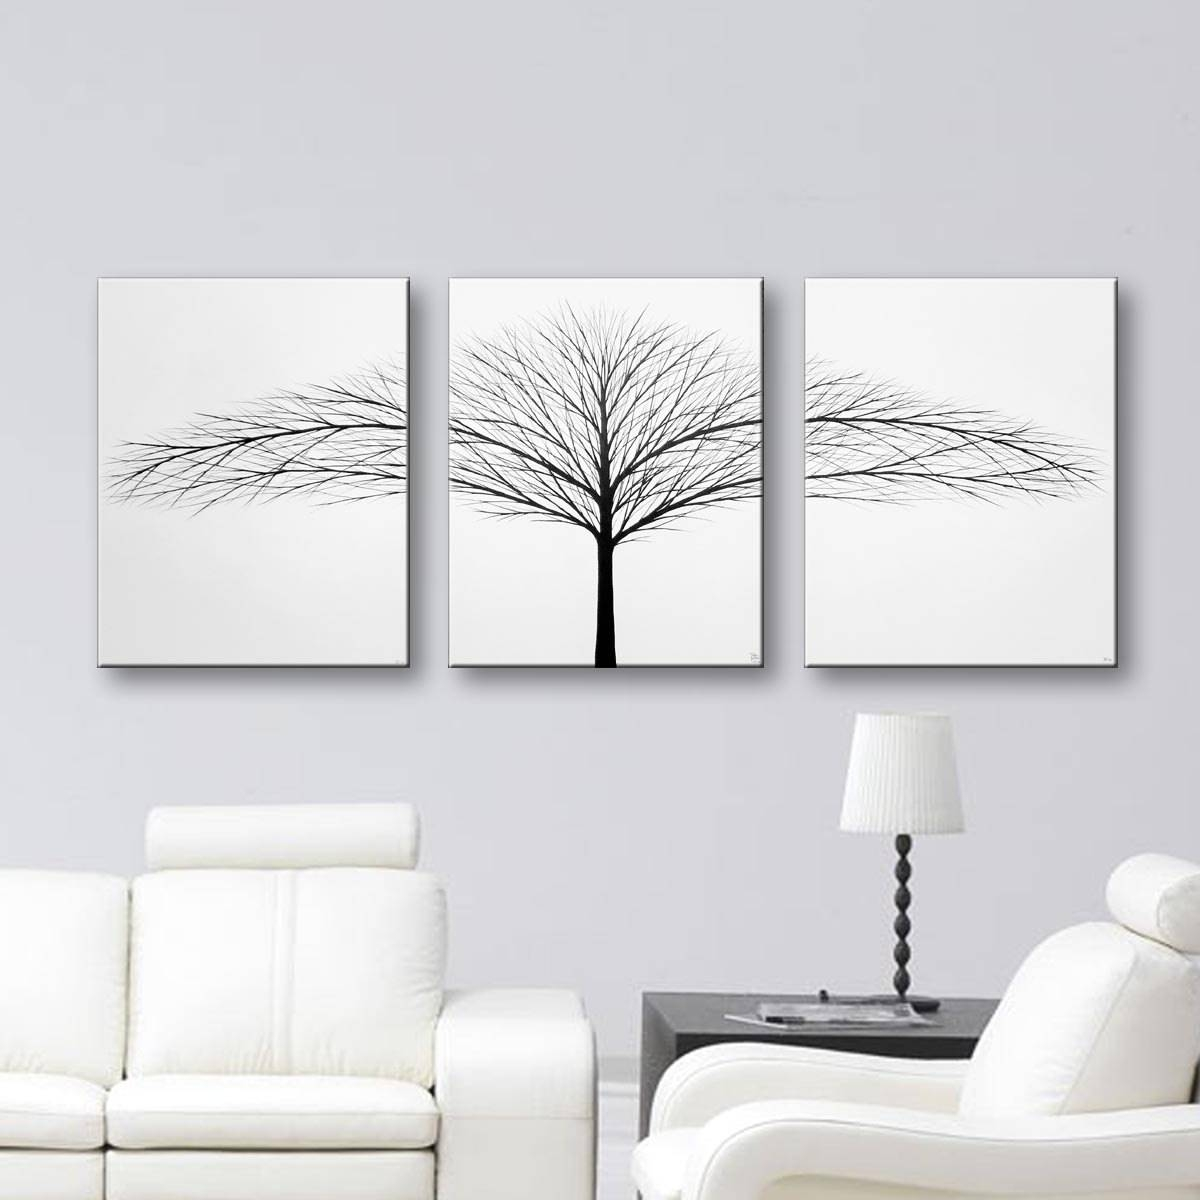 20 ideas of painted trees wall art. Black Bedroom Furniture Sets. Home Design Ideas